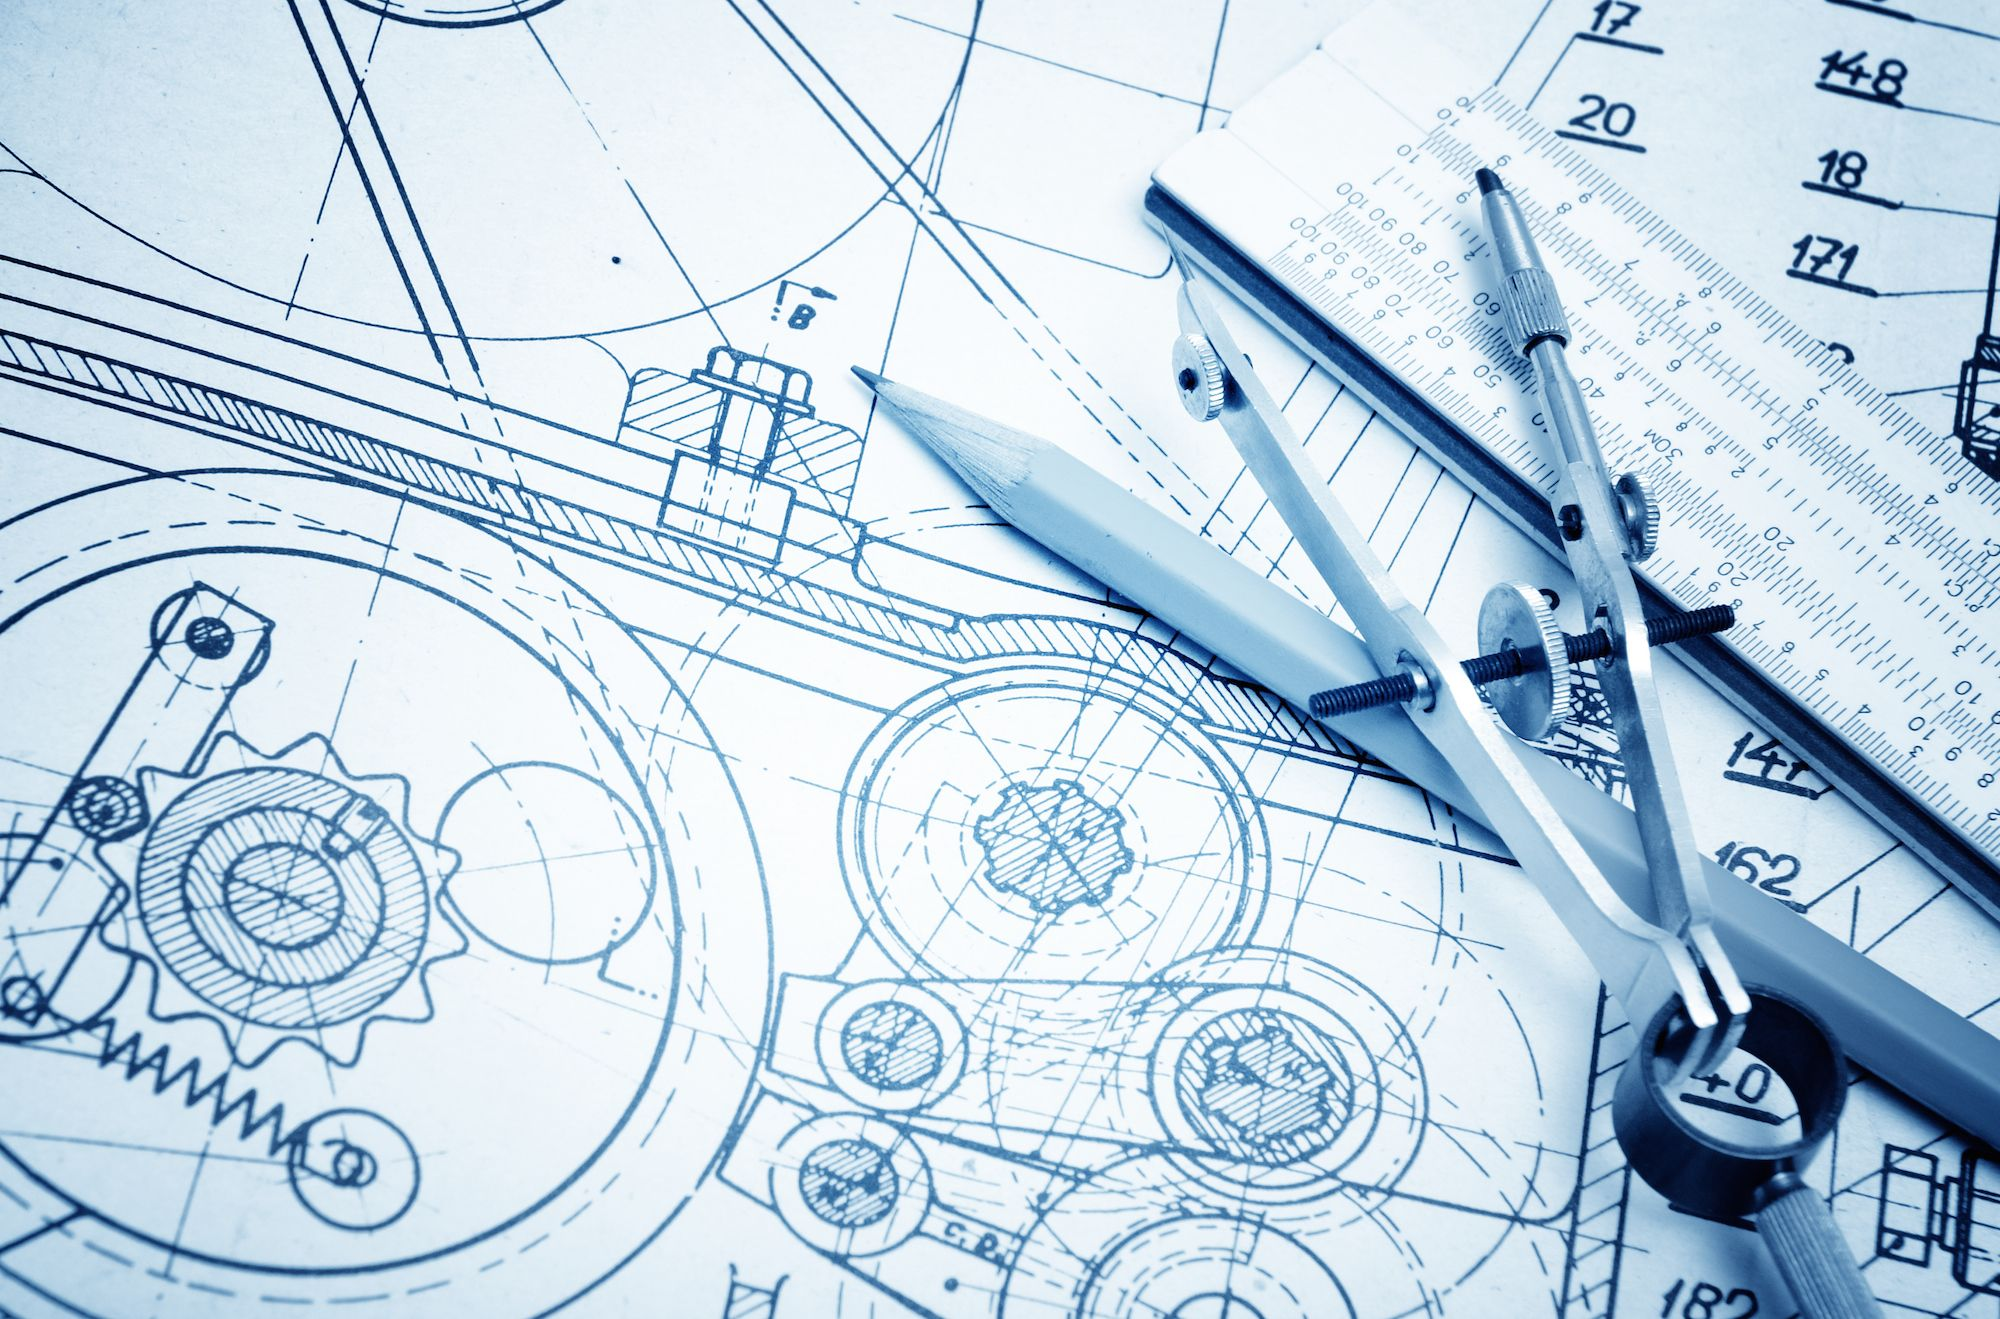 Engineering Spirals 10 Philosophies To Facilitate Innovation Mechanical Engineering Engineering Design Engineering Courses